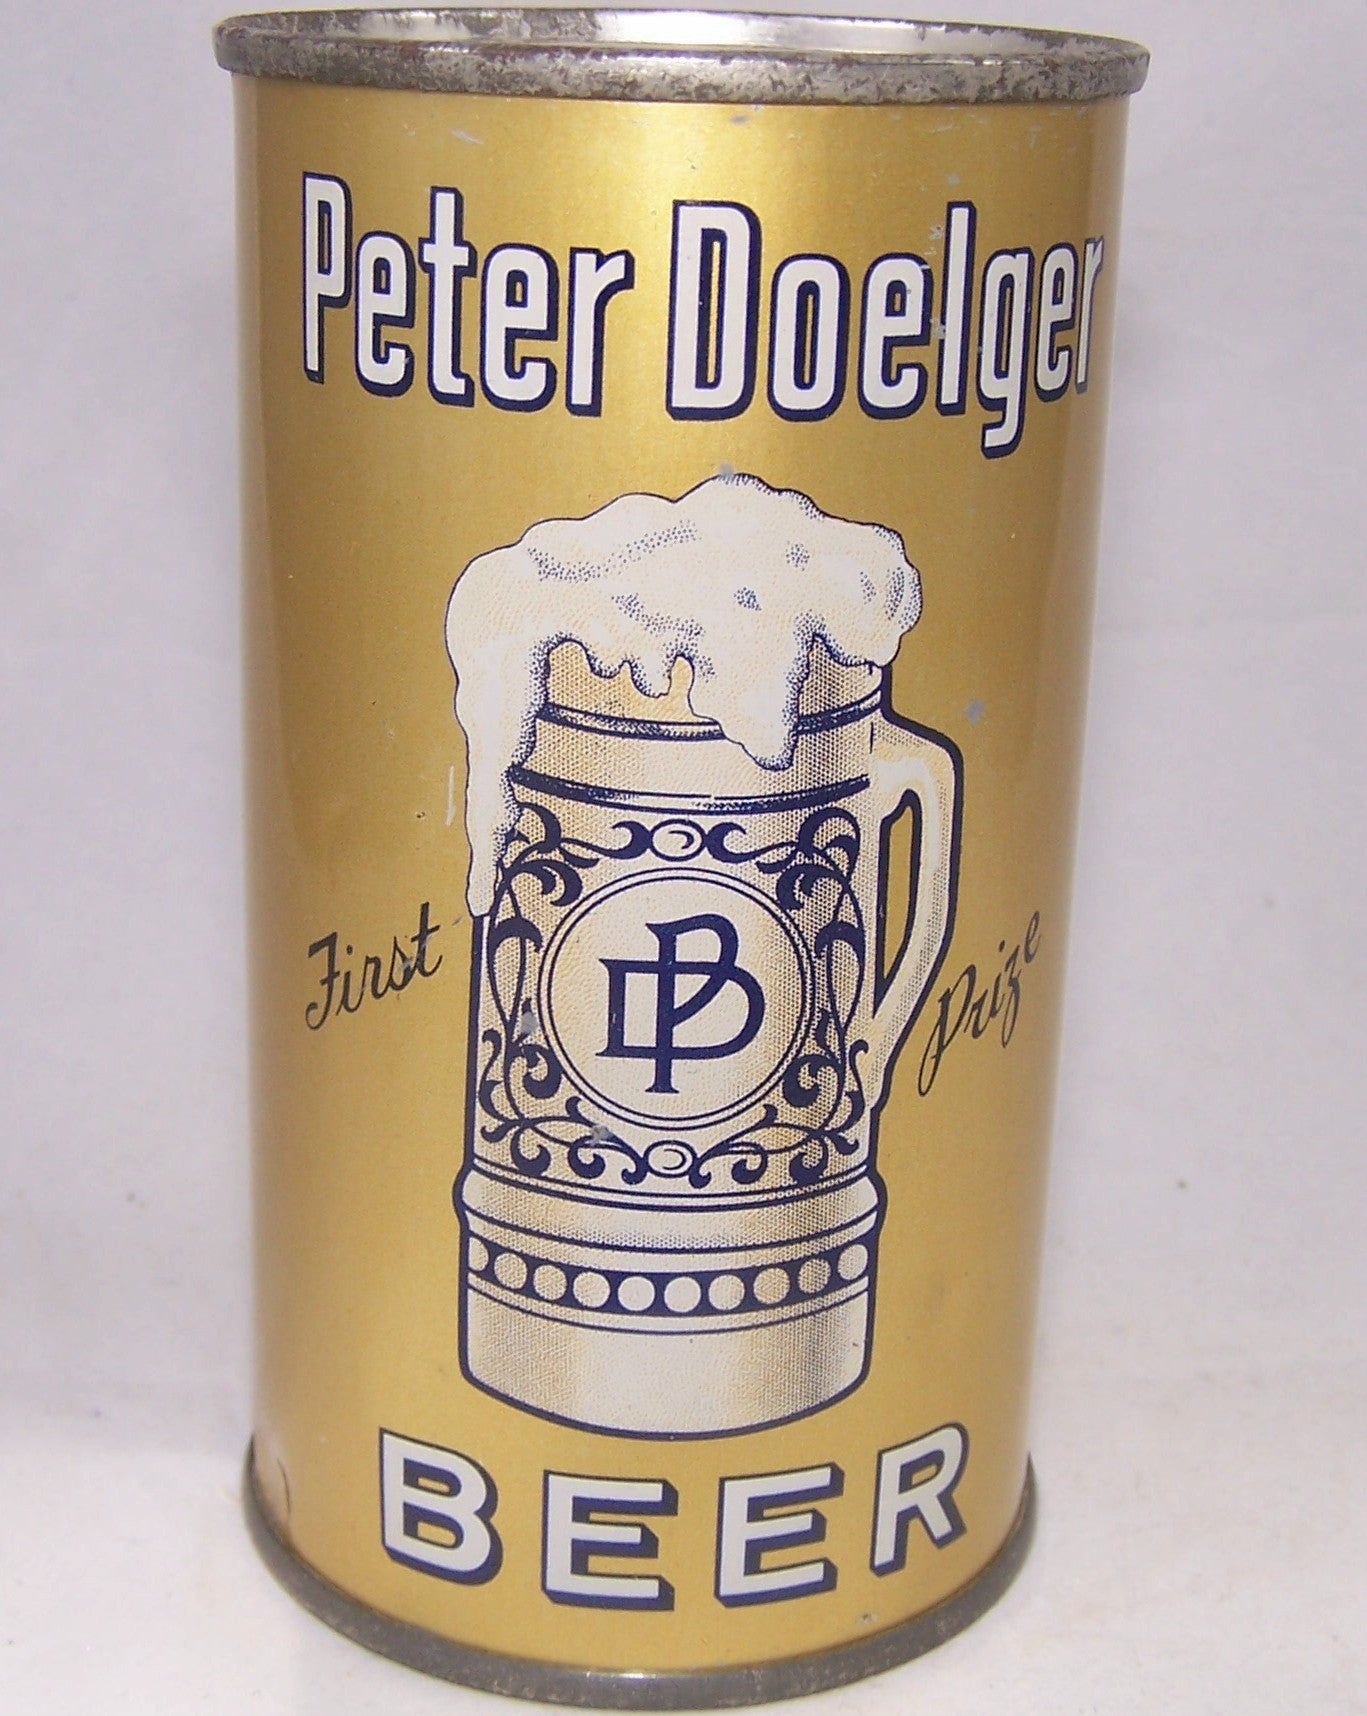 Peter Doelger First Prize Beer, Lilek # 670, Grade 1 to 1/1+ Sold on 12/10/16